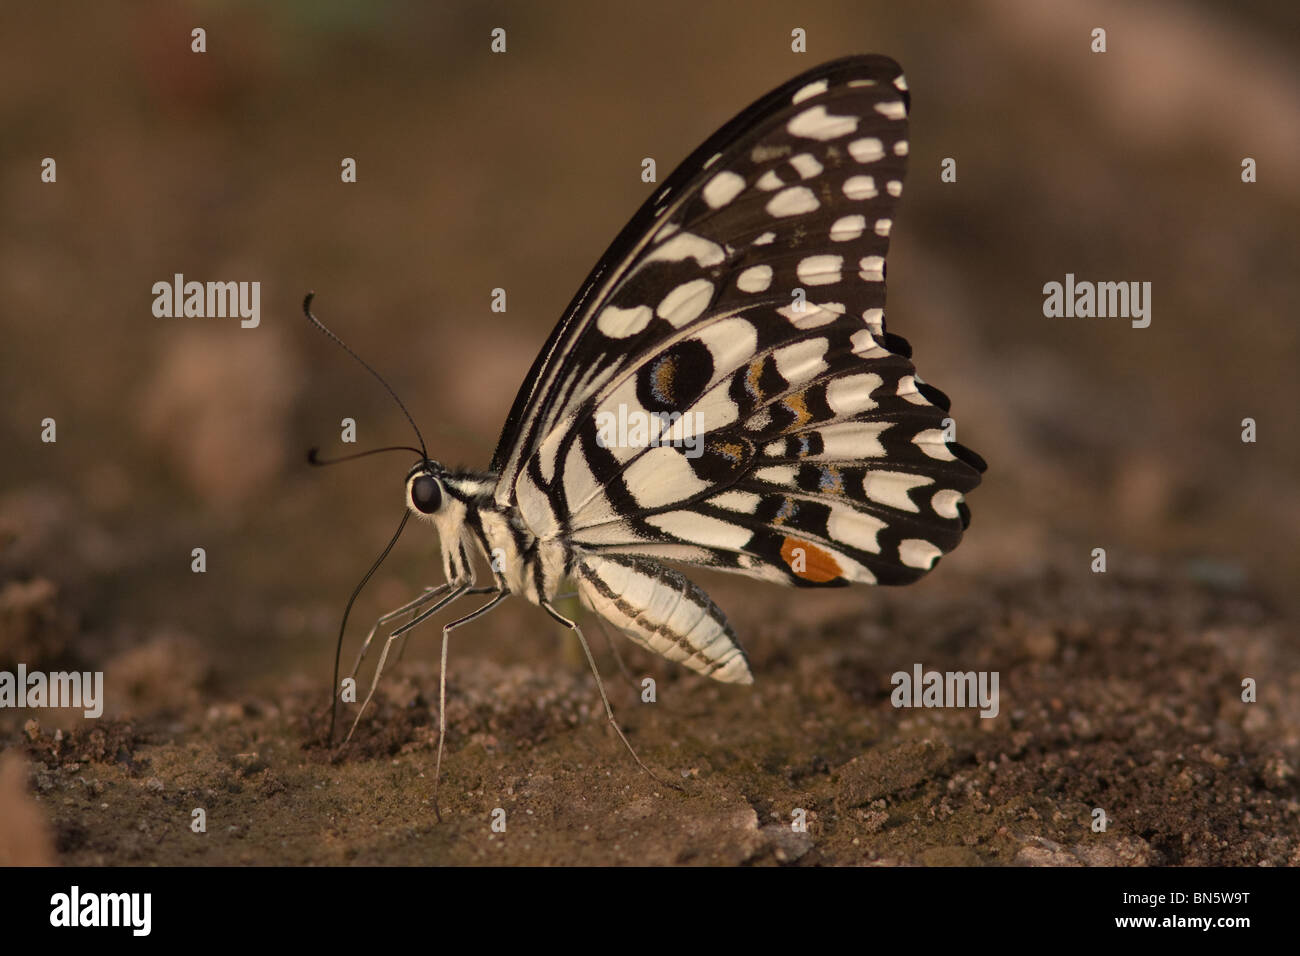 Lime Butterfly or Common Lime (a beautiful butterfly) sitting on the ground and mud-puddling - A high contrast image Stock Photo